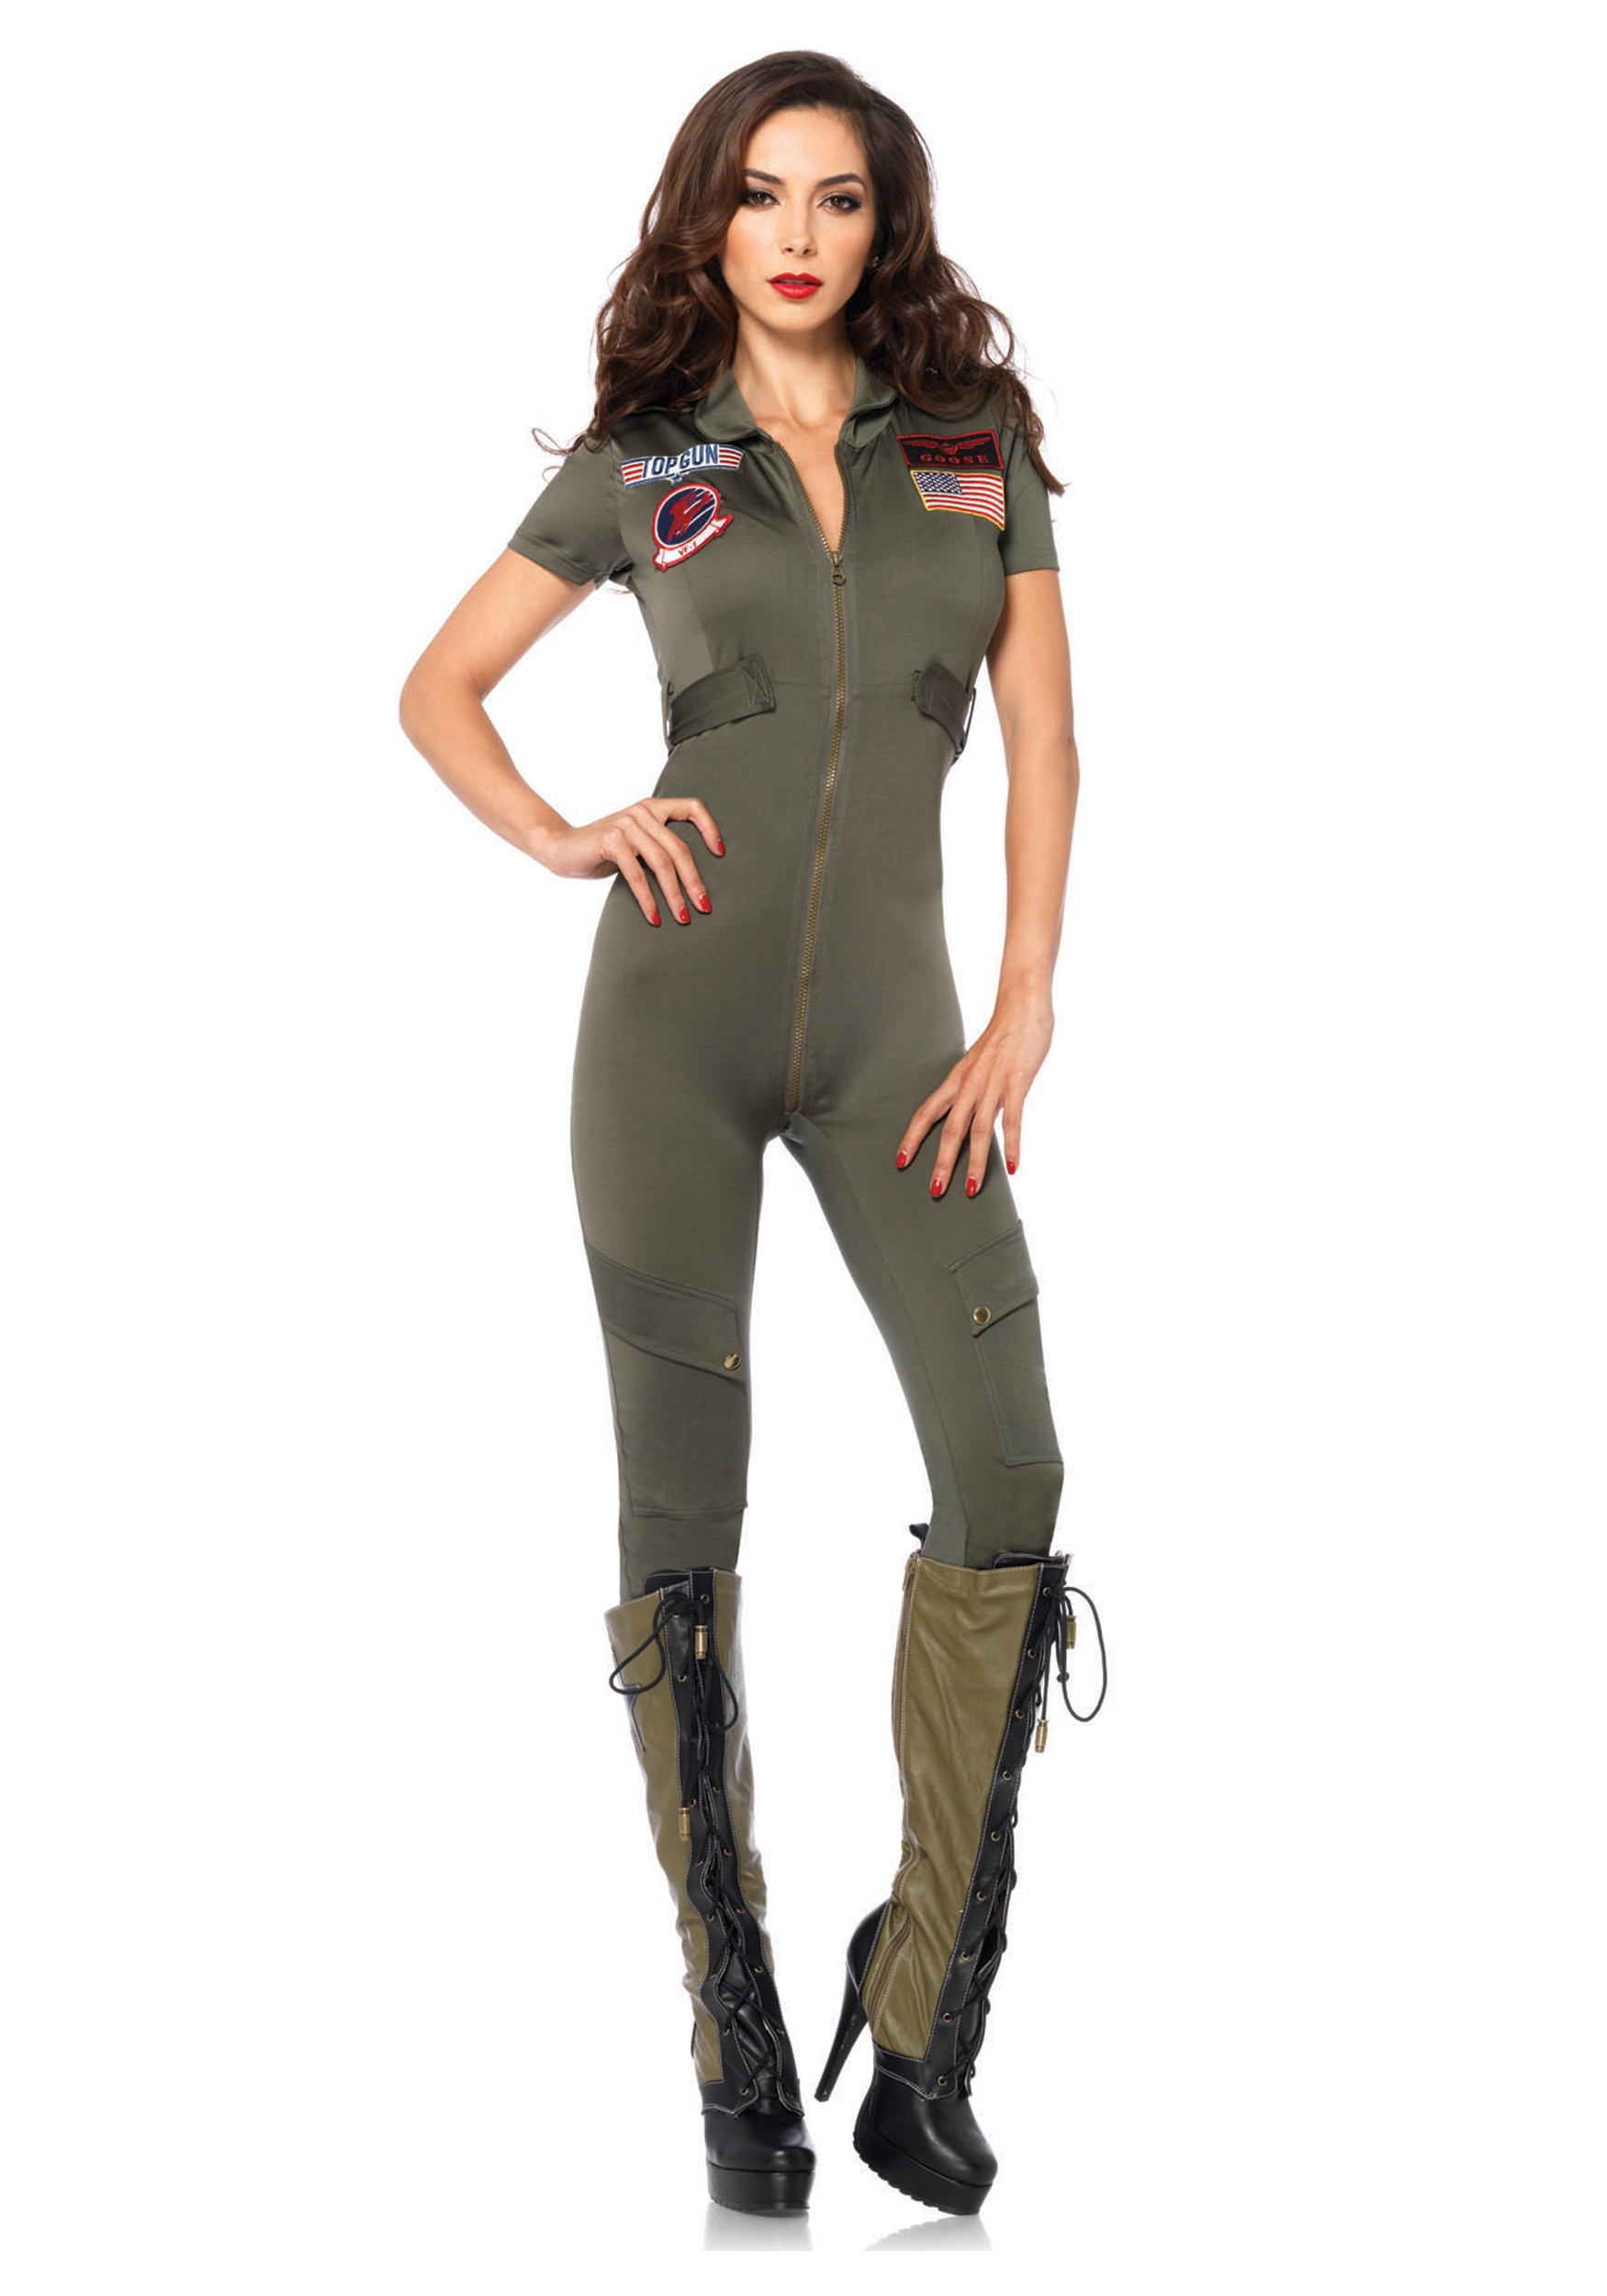 Top Gun Women S Jumpsuit Costume